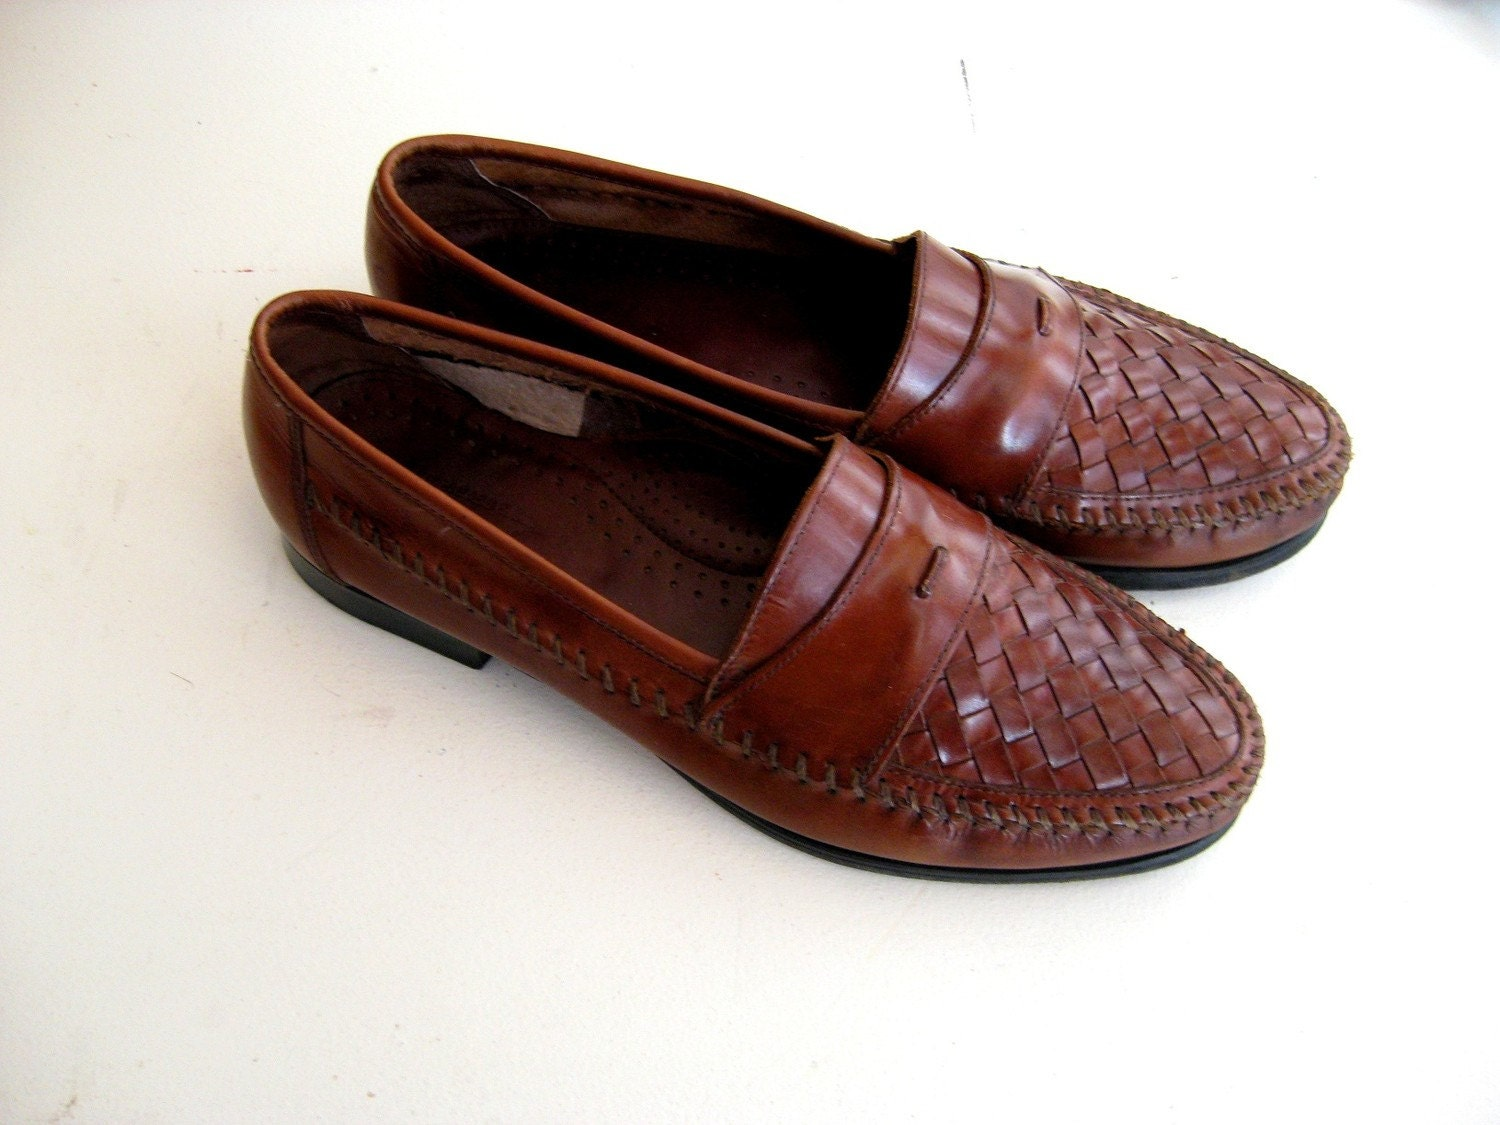 Loafers for Men. Men's loafers are a timeless staple that should be in every closet. Check your calendar, there's a loafer for every event! At Famous Footwear, we have so many options for you to find your perfect pair of loafers for any occasion.